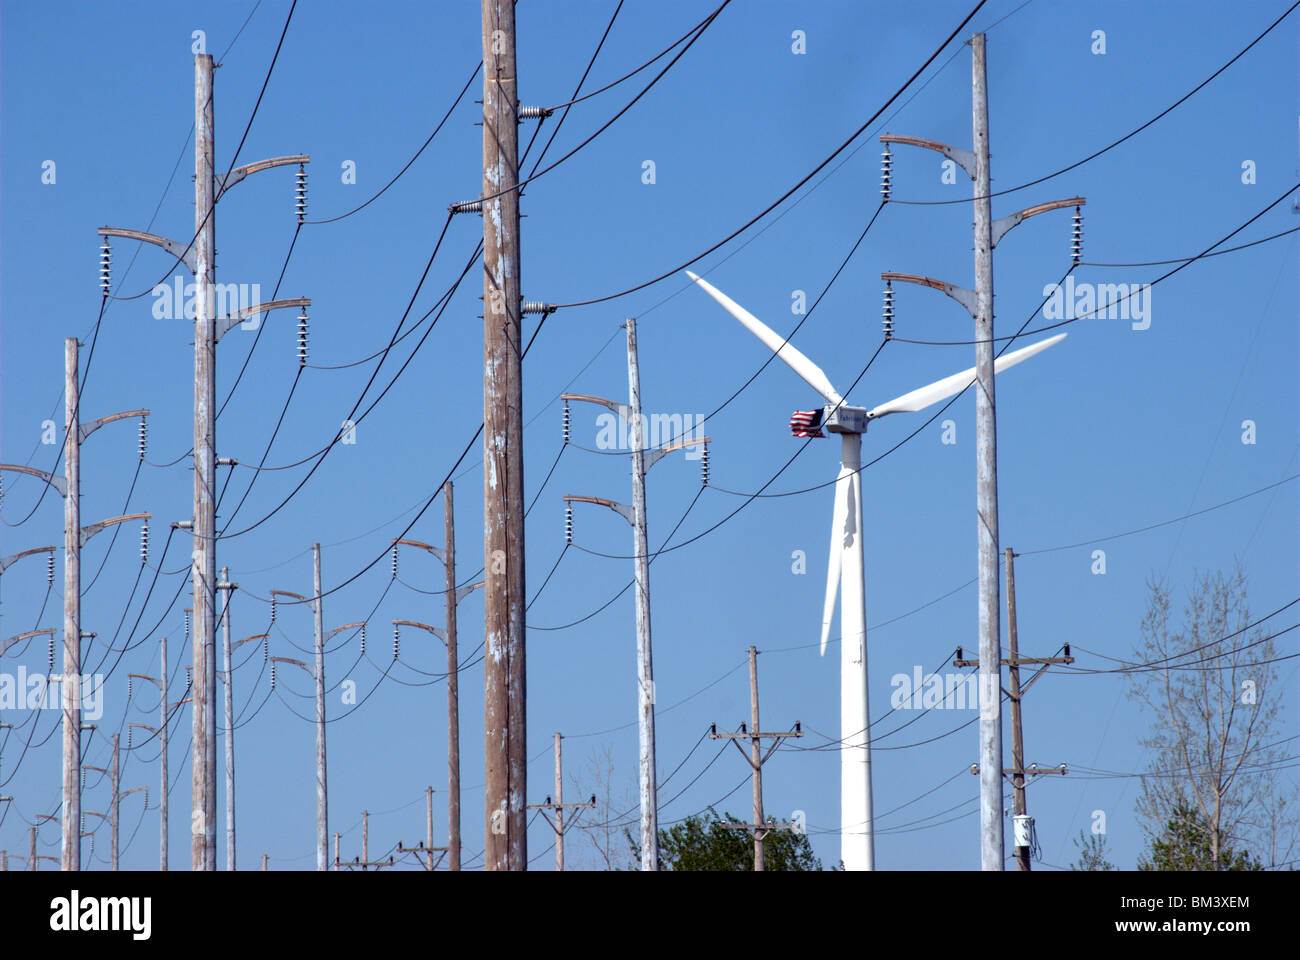 Wind turbine for industrial plant among traditional energy grid lines - Stock Image